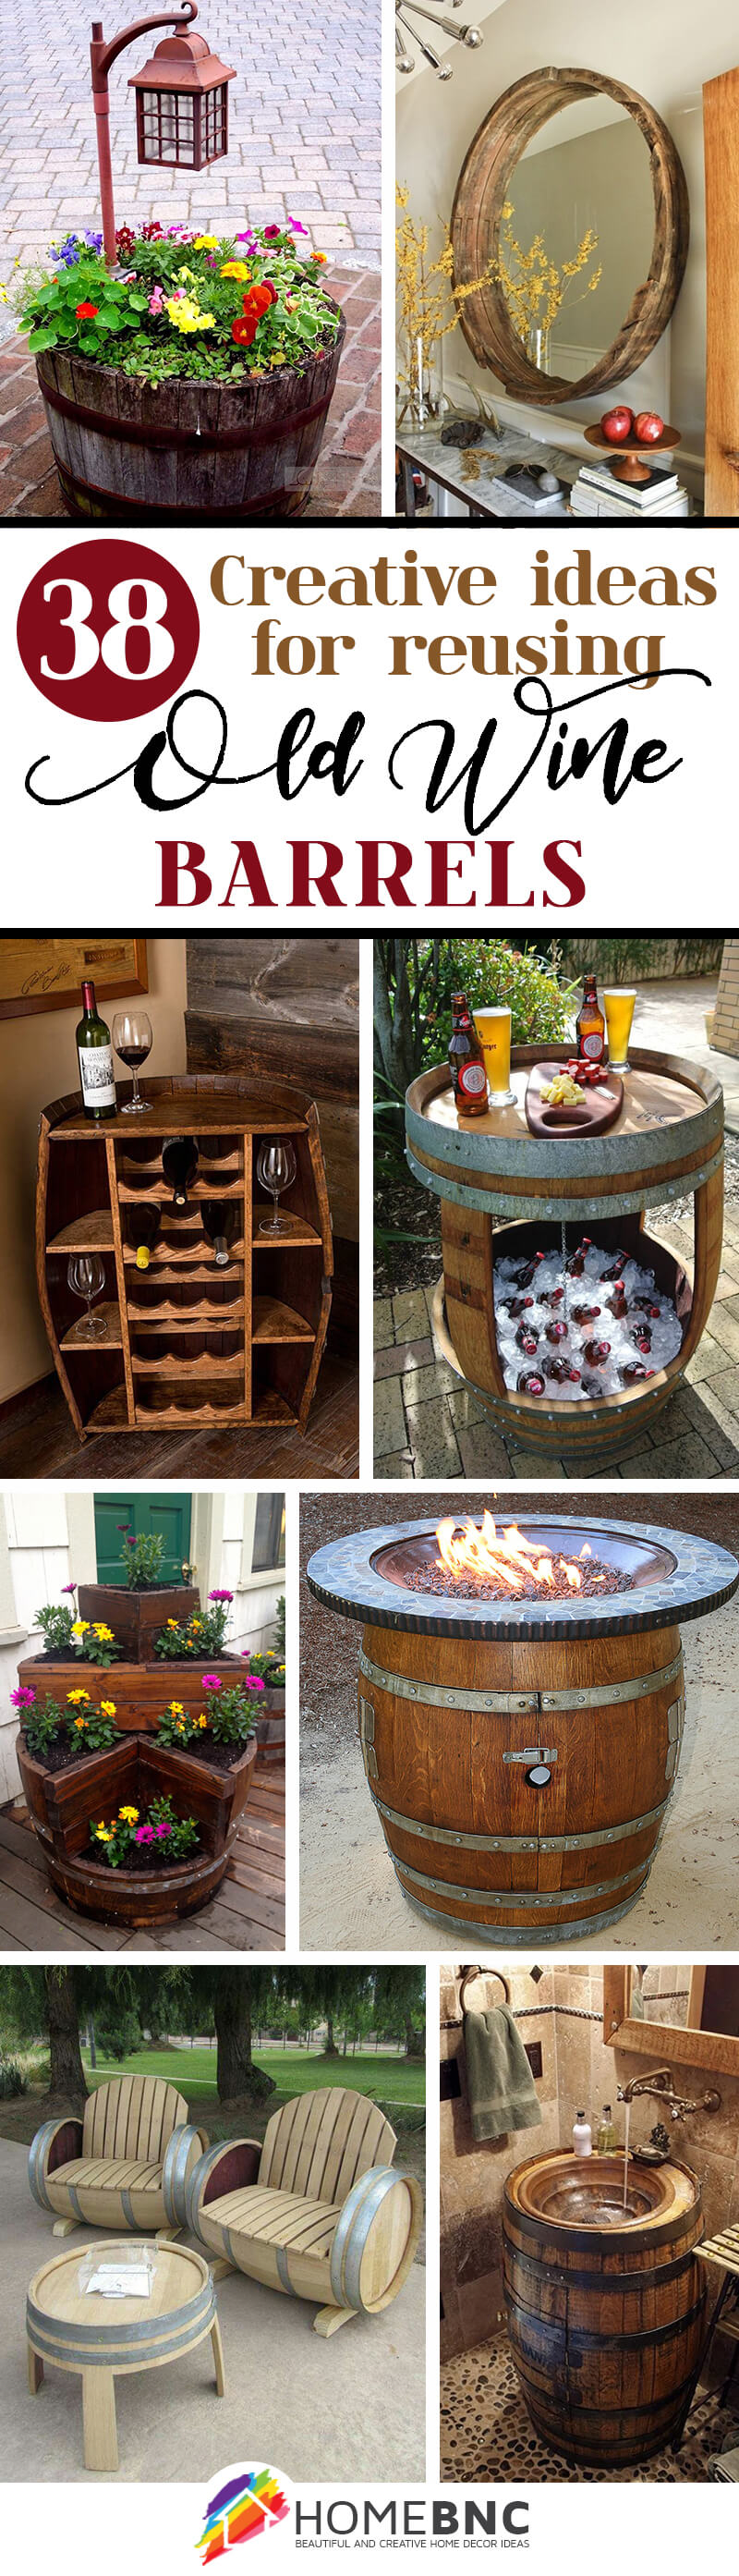 Reusing Old Wine Barrels